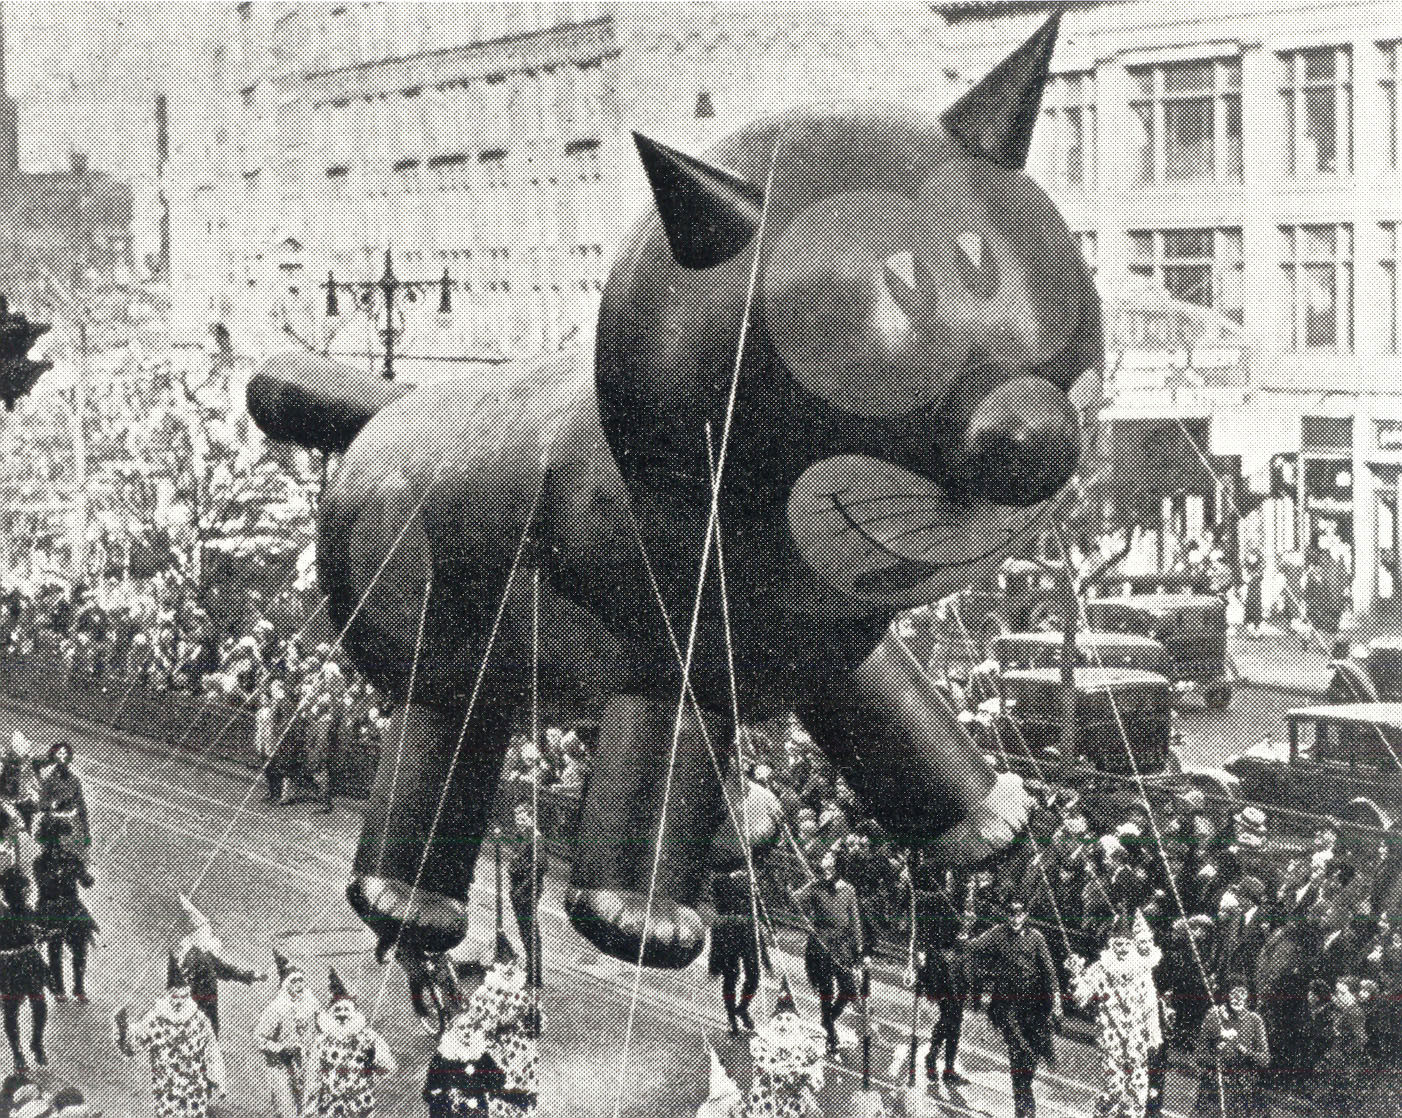 Felix the Cat - 1927 Parade Balloon